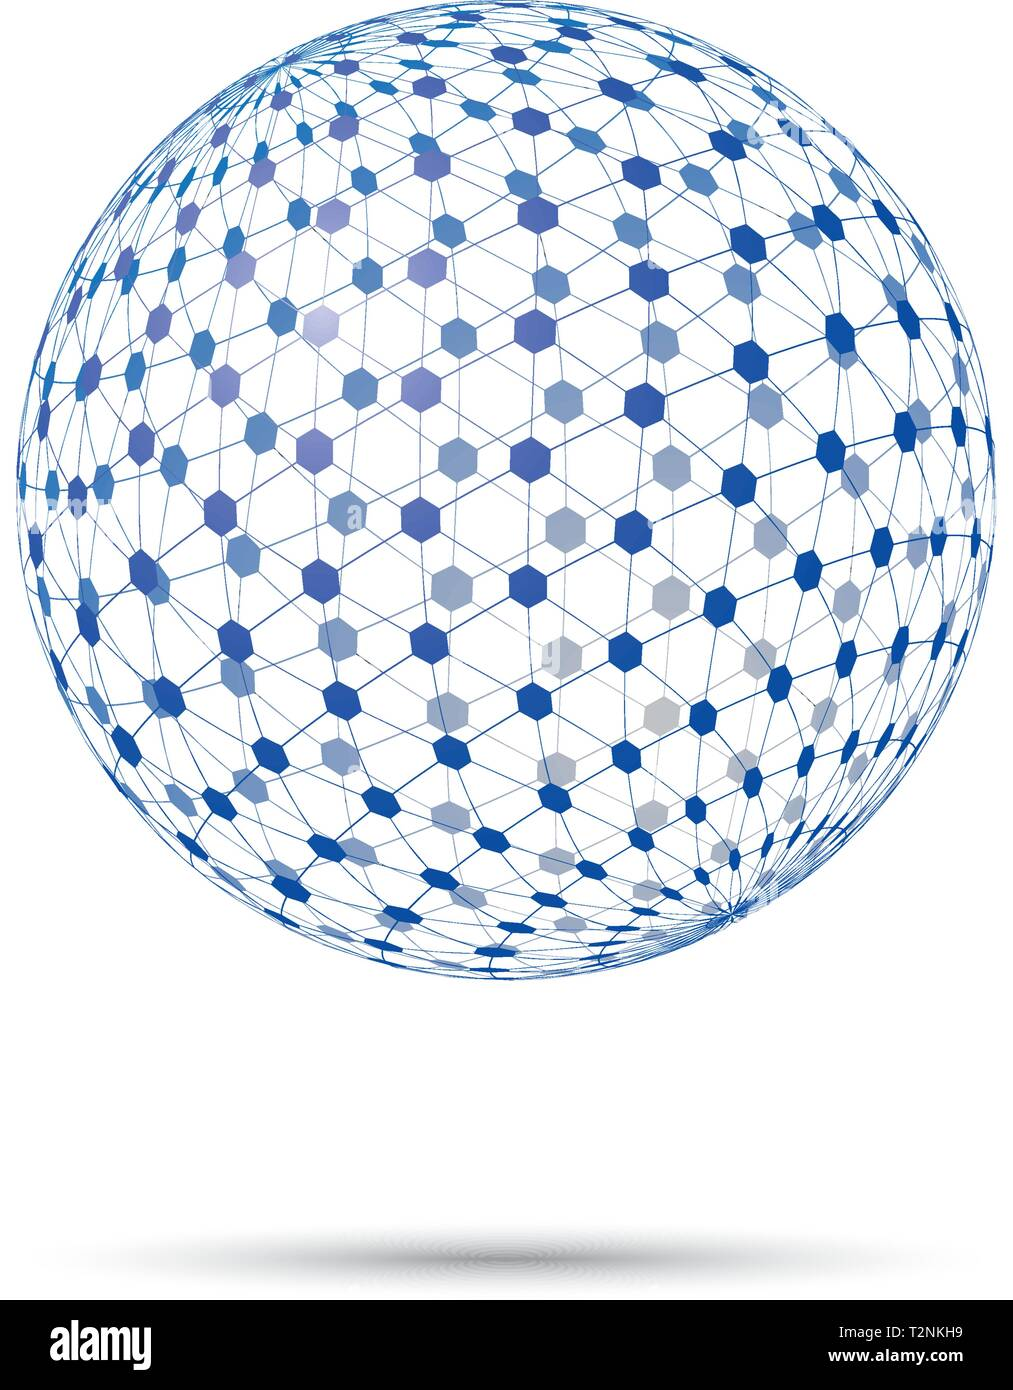 Abstract levitating transparent tesseract sphere vector illustration - Stock Image